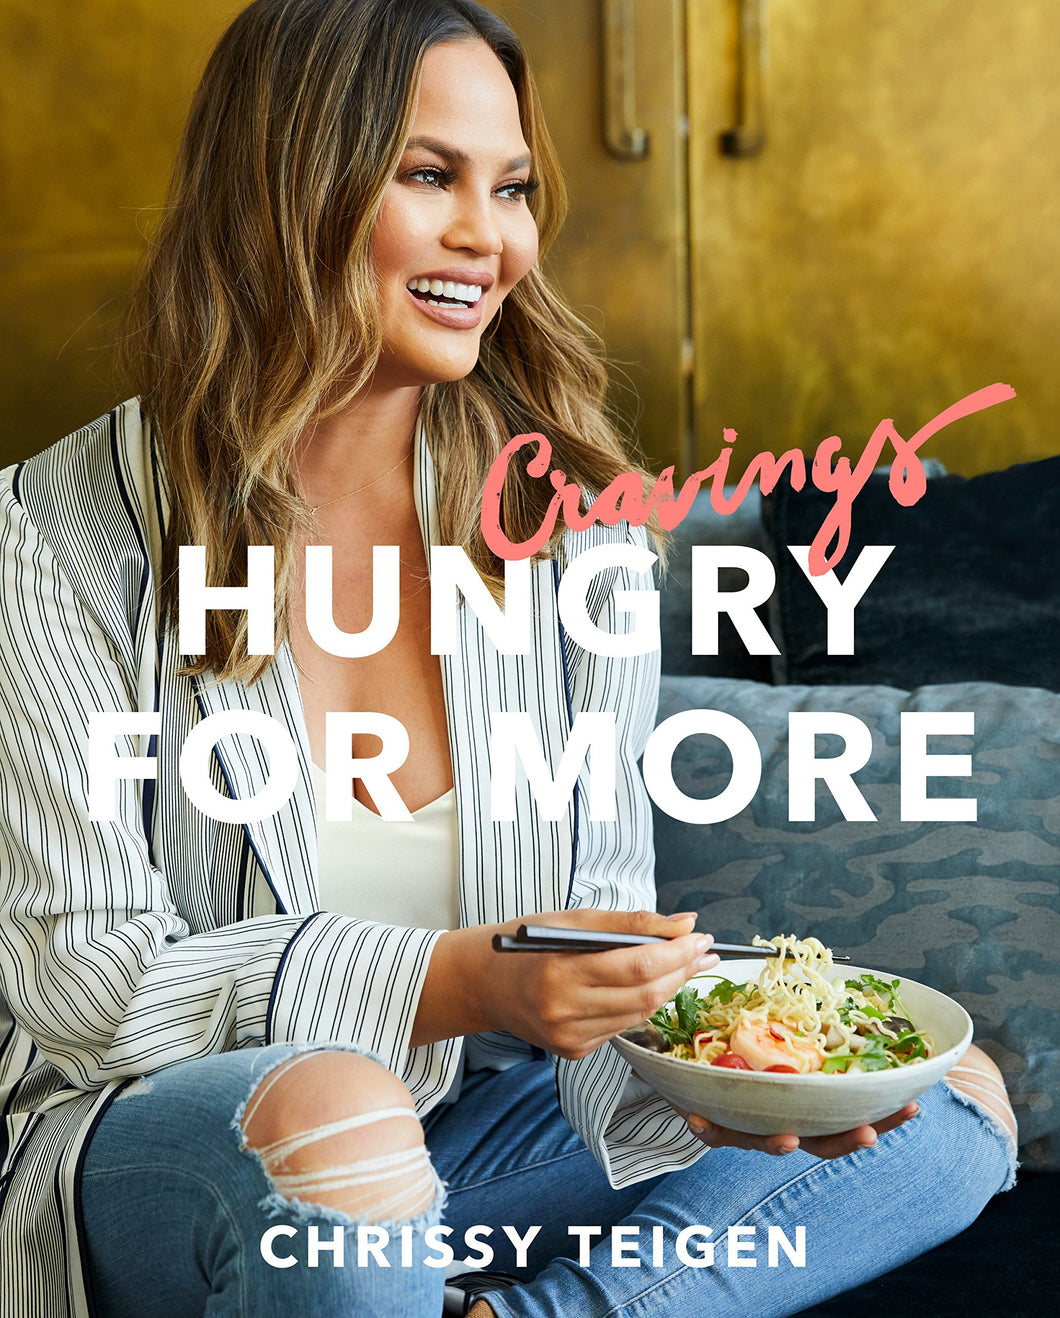 Cravings: Hungry for More: A Cookbook by Chrissy Teigen